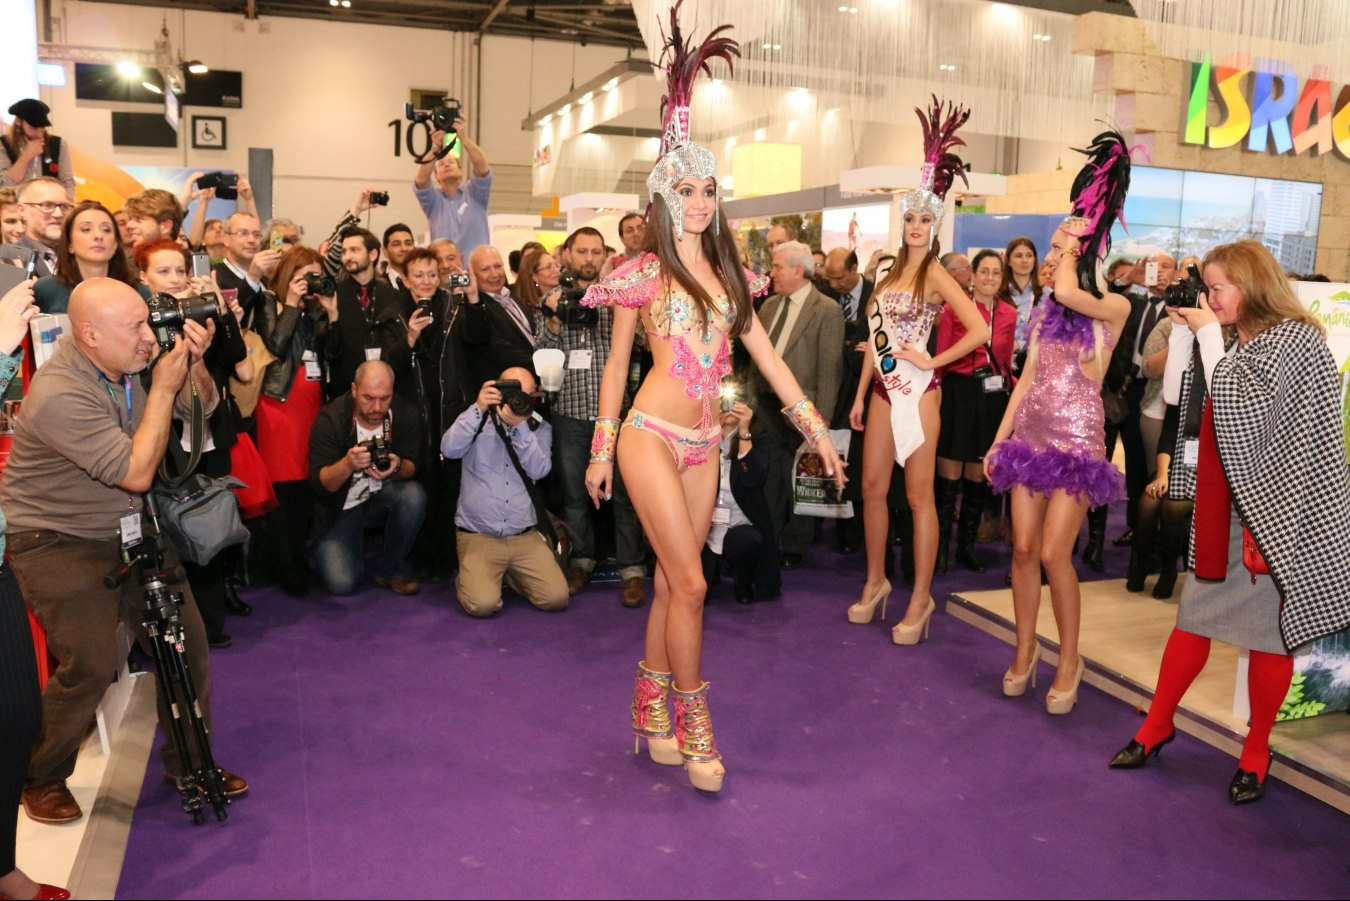 Mamaia Resort delivered the most spectacular performance at WTM Festivals